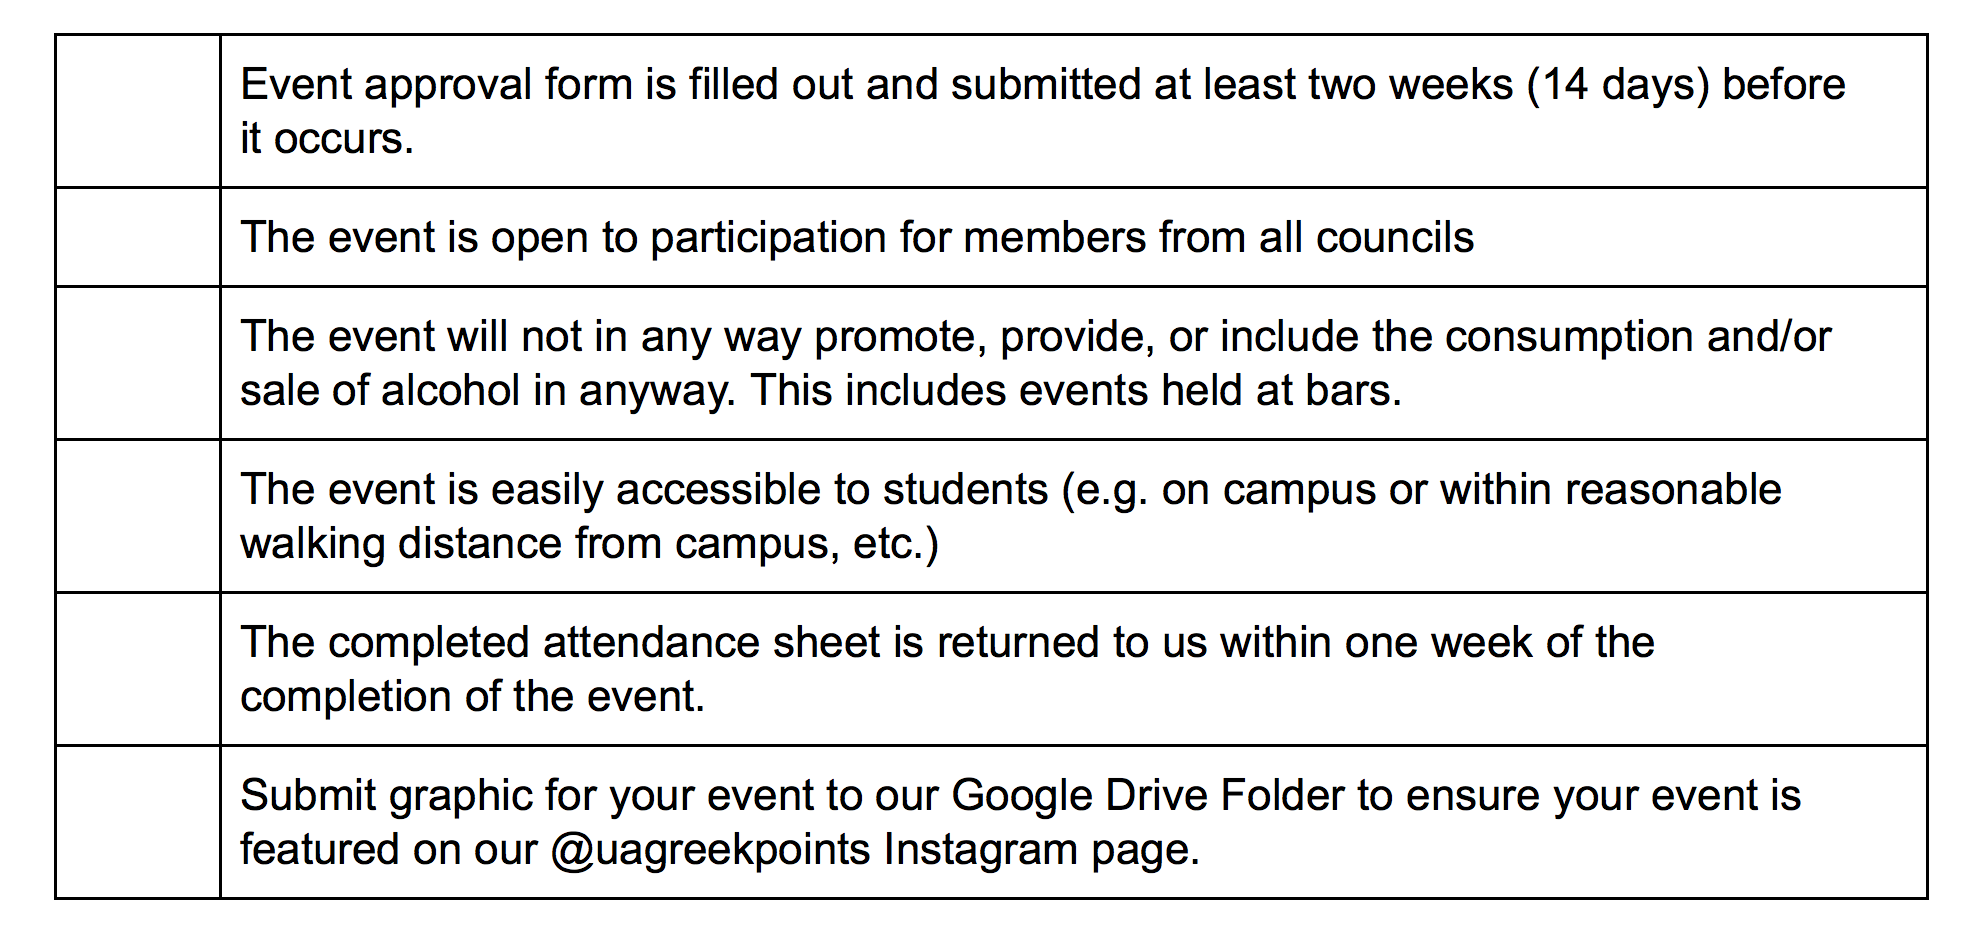 Greek Points Guidelines for Approval of Events.